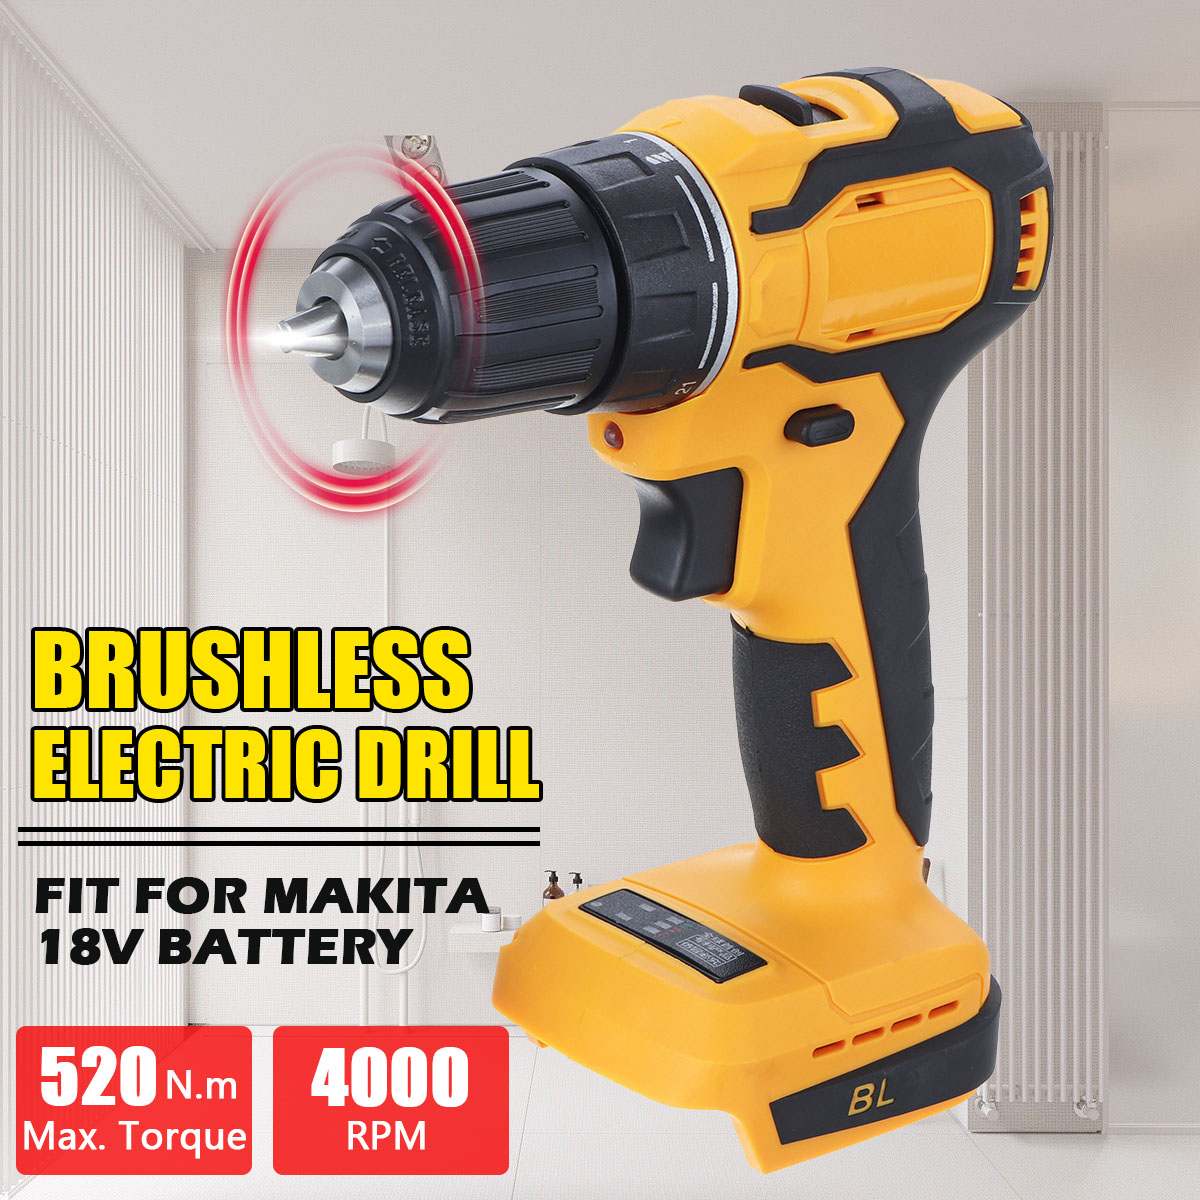 18V 3 in 1 Brushless Electric Hammer Drill Electric Screwdriver 10mm Torque Cordless Impact Drill for Makita Battery